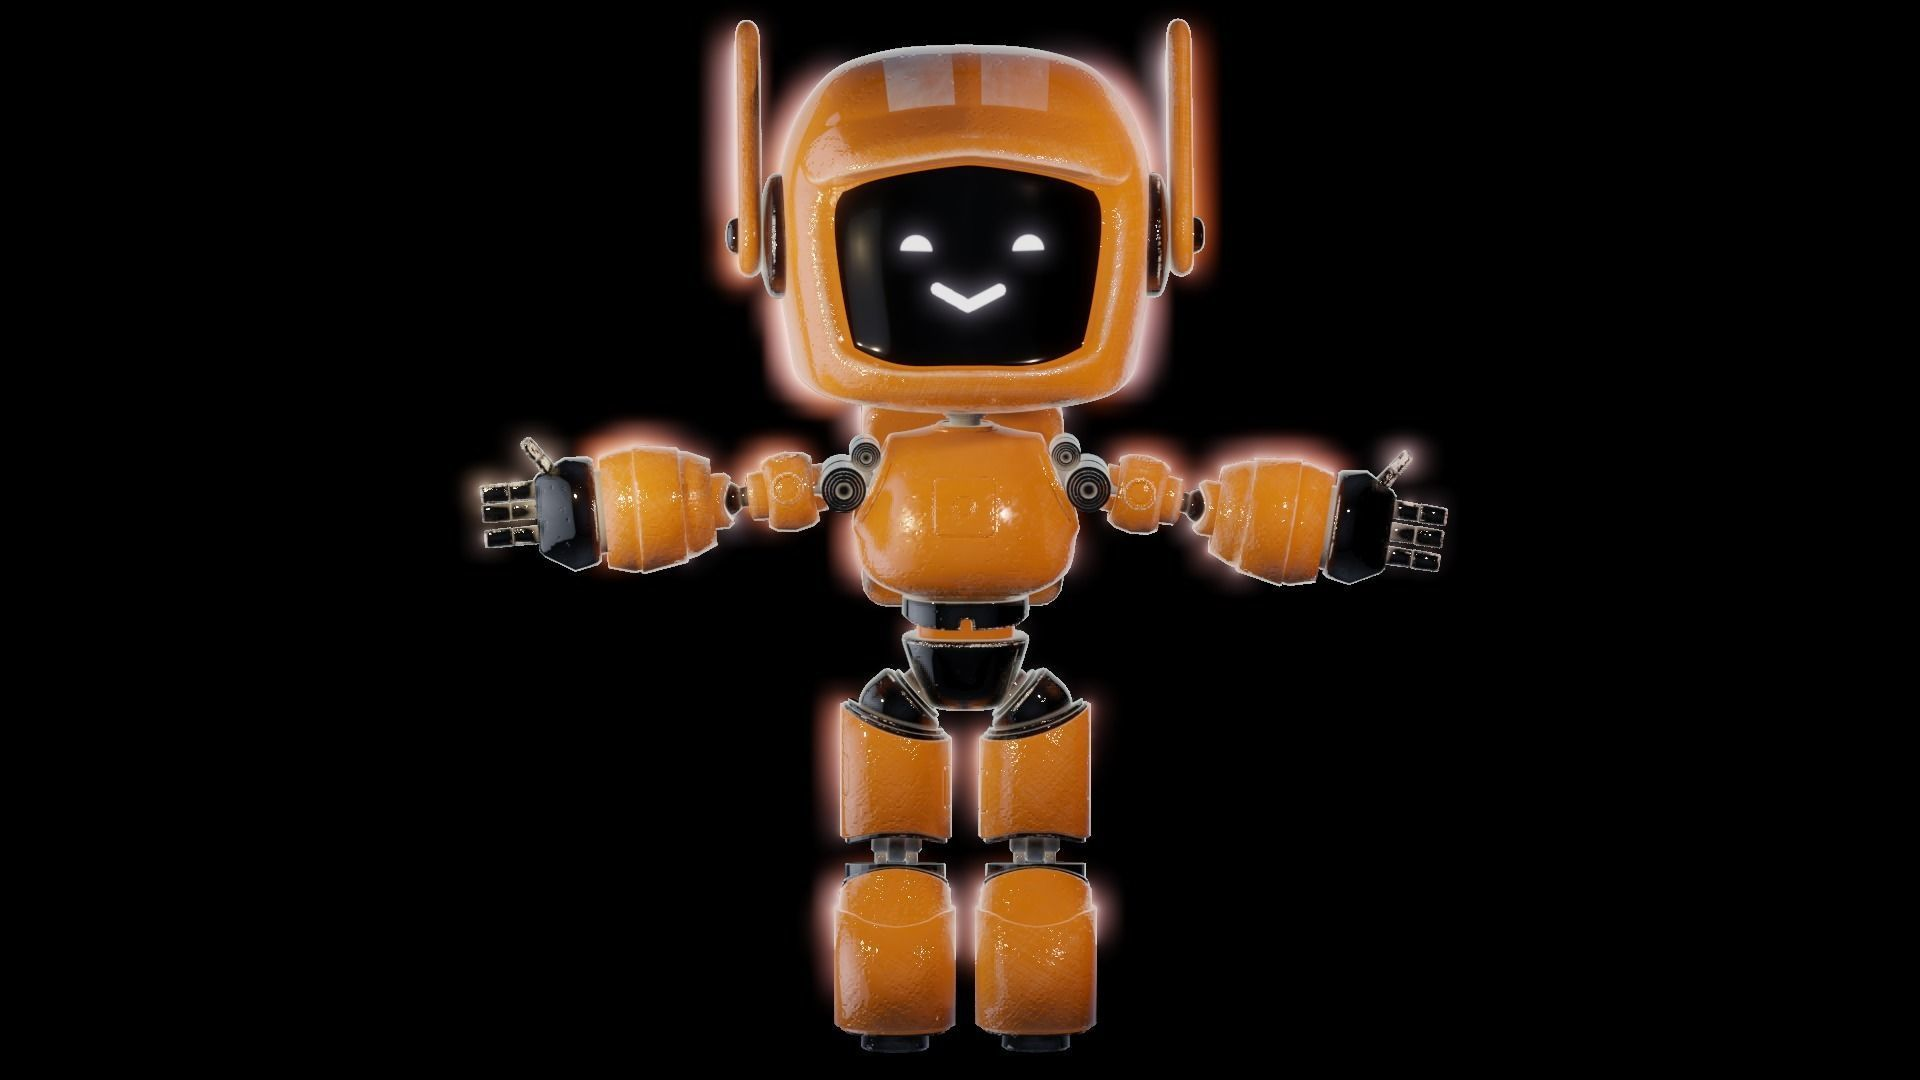 ORANGE ROBOT from LOVE DEATH AND ROBOTS